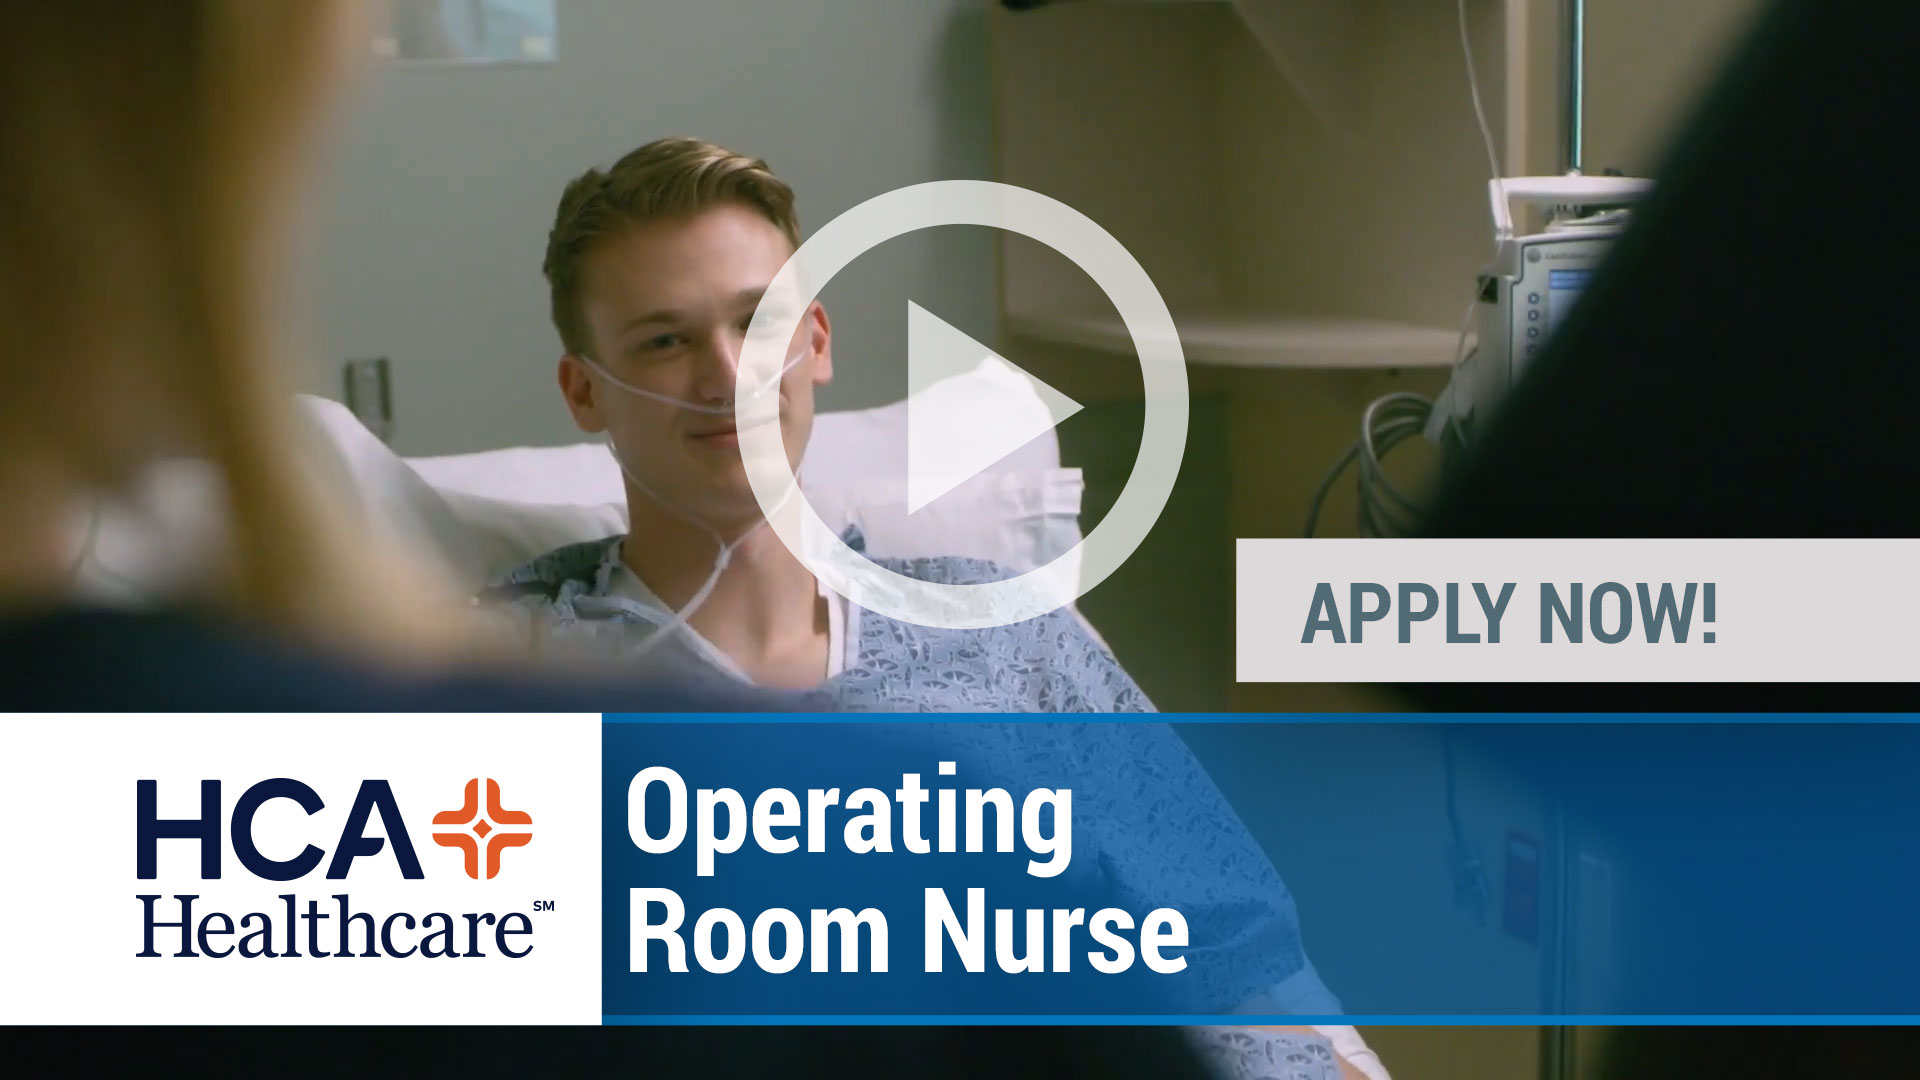 Watch our careers video for available job opening Operating Room Nurse in Trinity, Florida